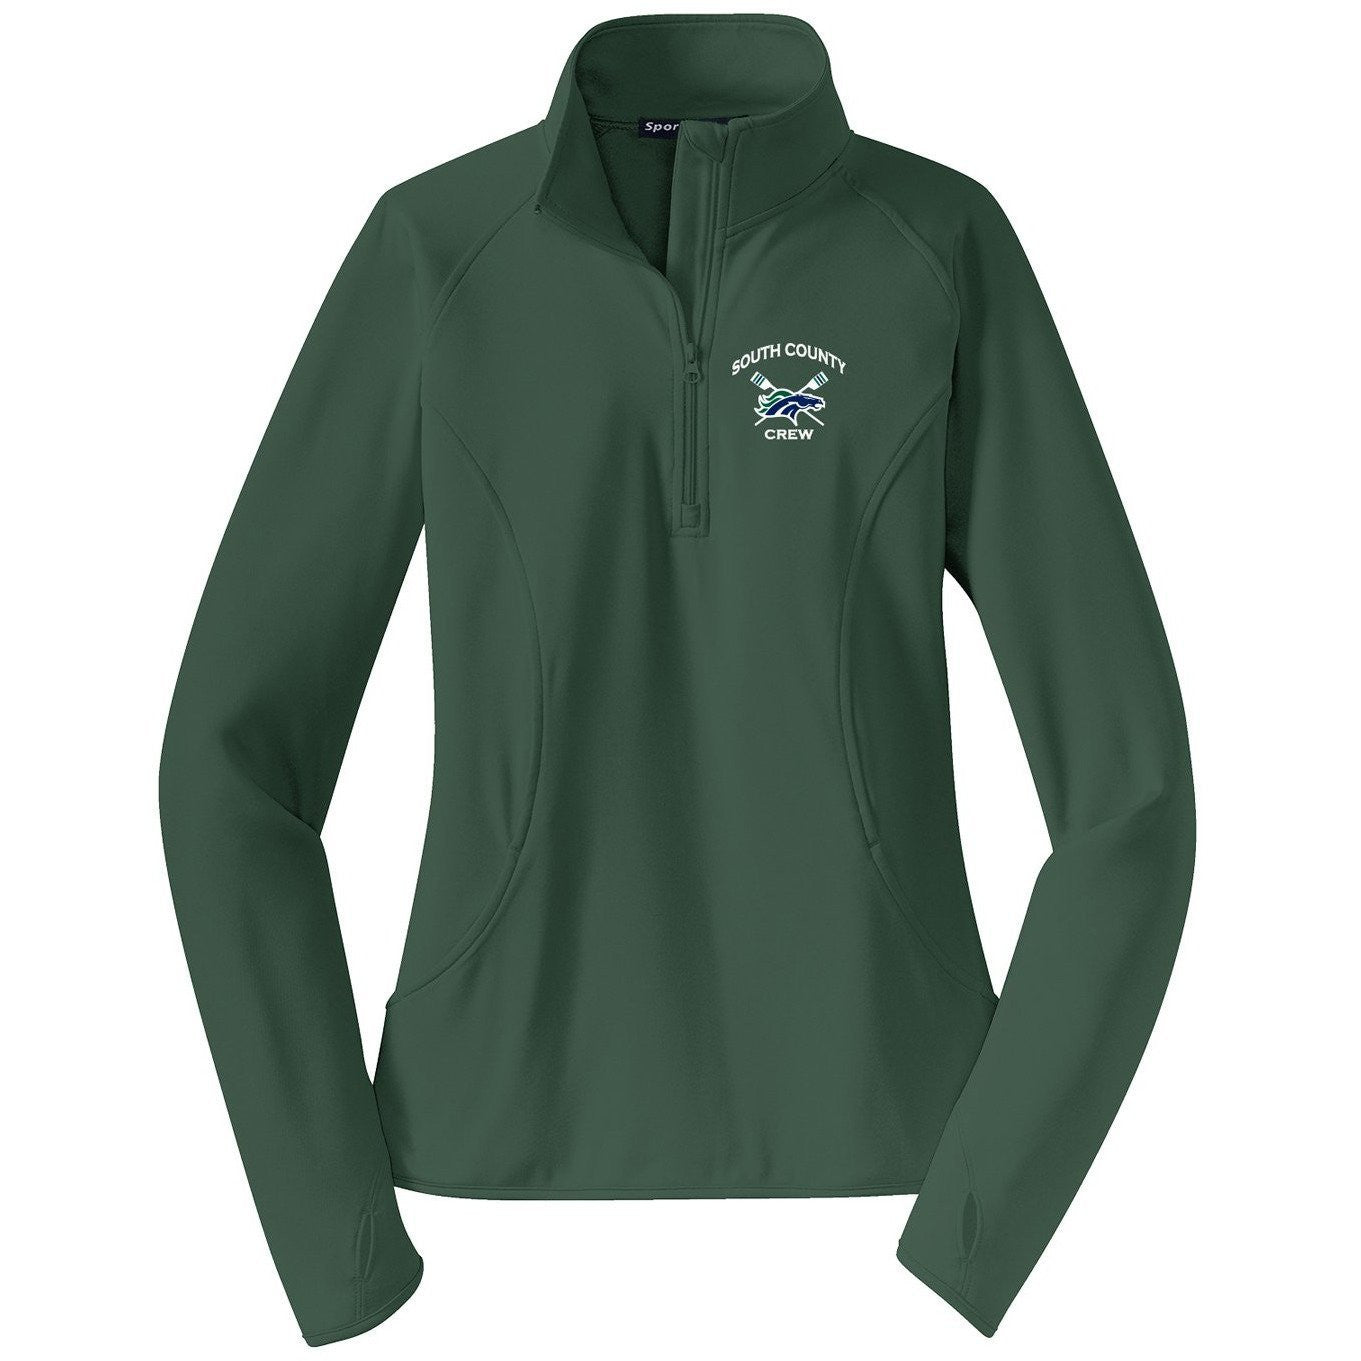 South County Crew Ladies Performance Thumbhole Pullover